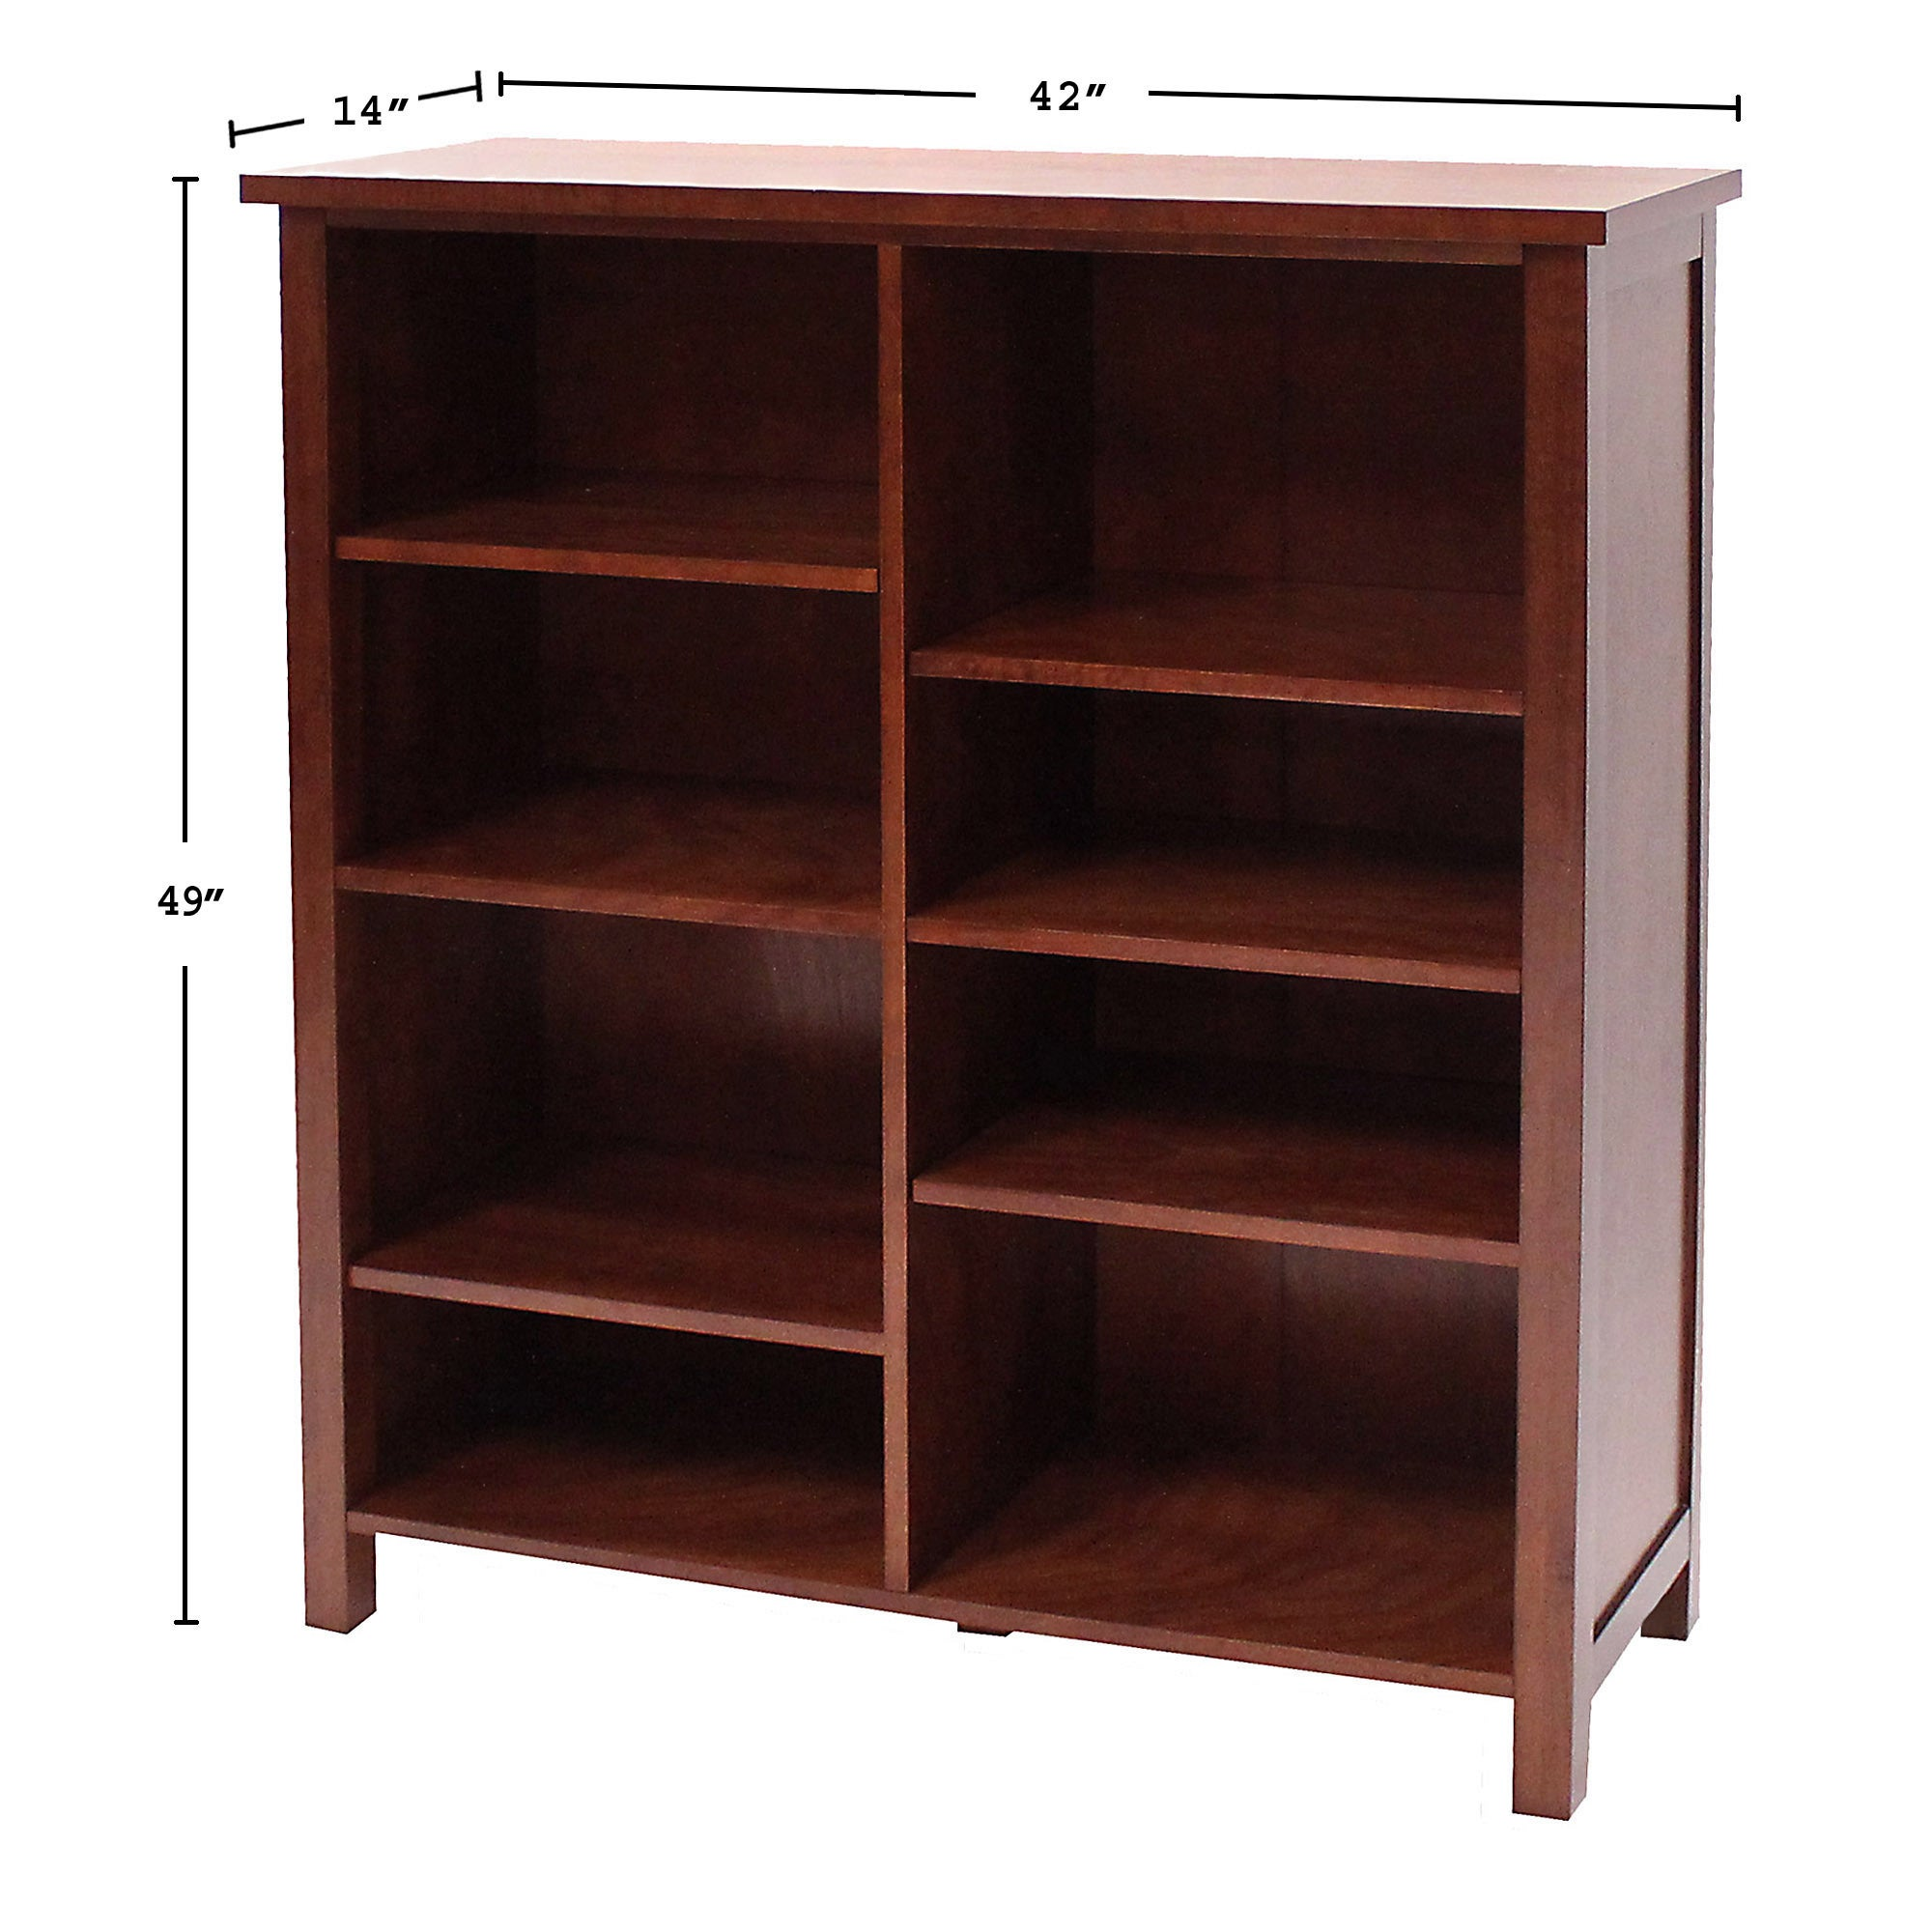 cube bookcases pin narrow shelves bookcase double twenty this white wonderful wide storage and cool options